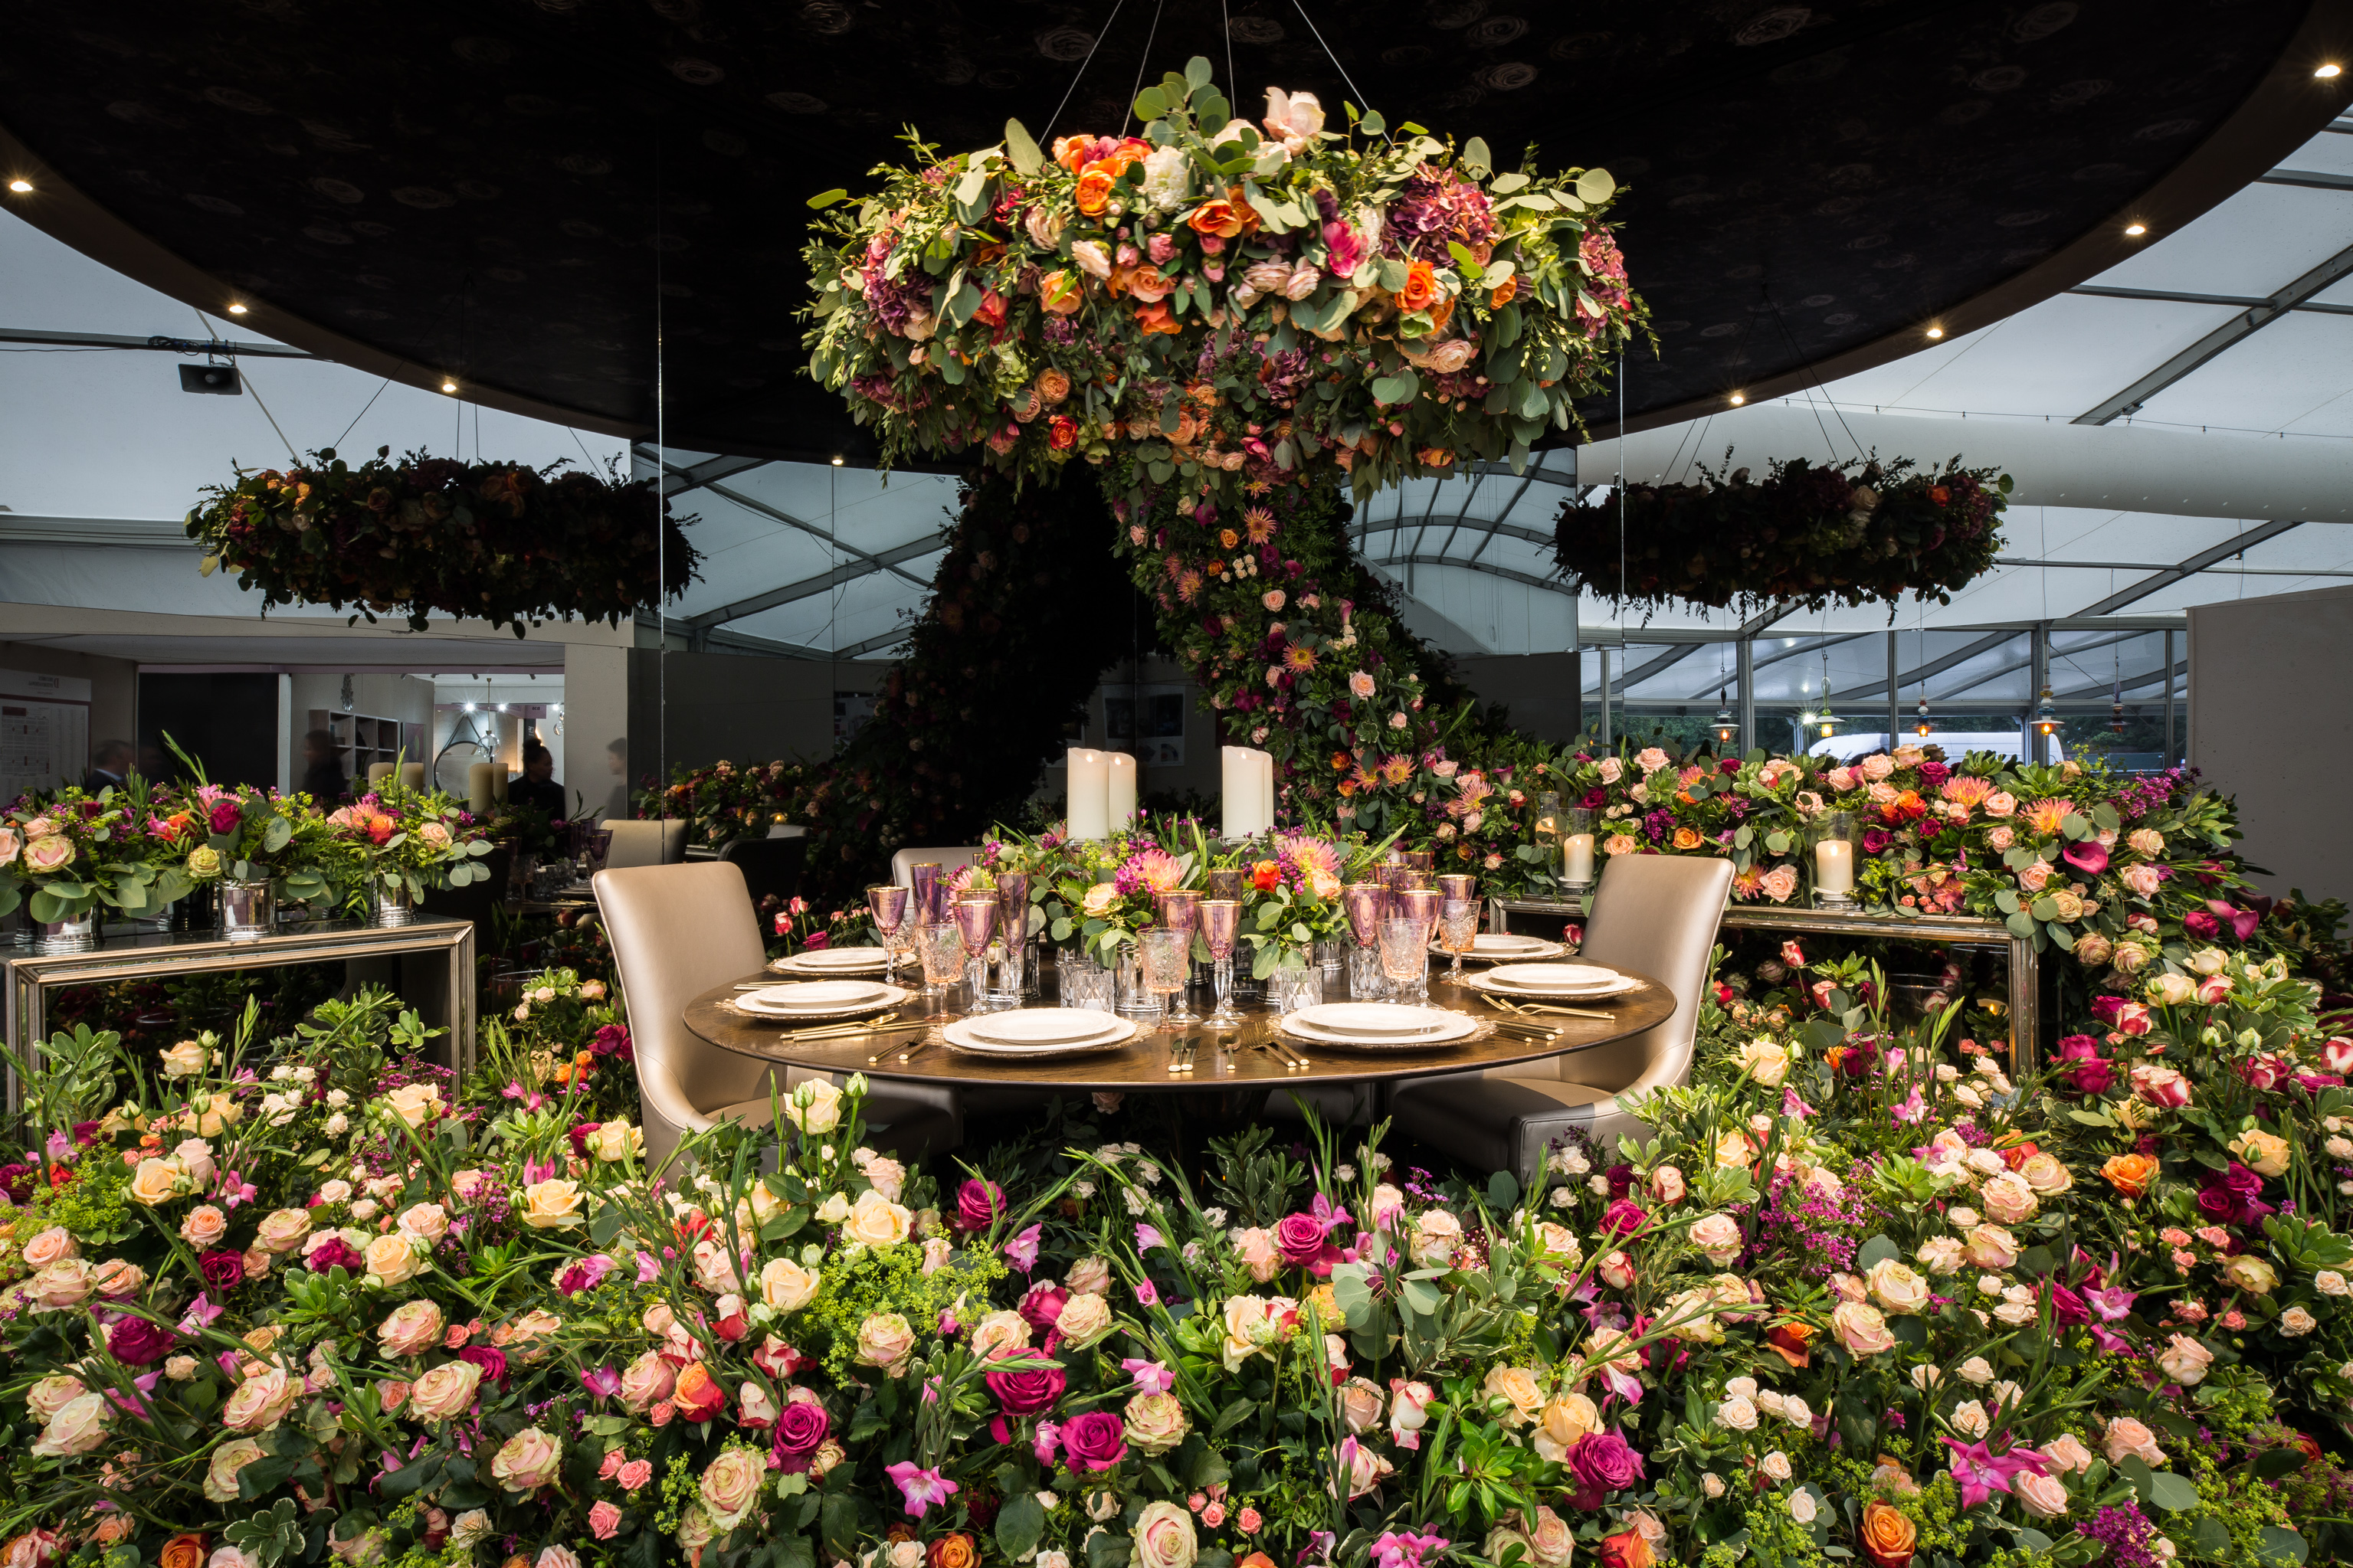 Larry Walshe Flowers Decorex International Main Entrance Chandelier Flower Foliage Carpet Table Setup Dinner Service Glassware Candles Flowers Florist London